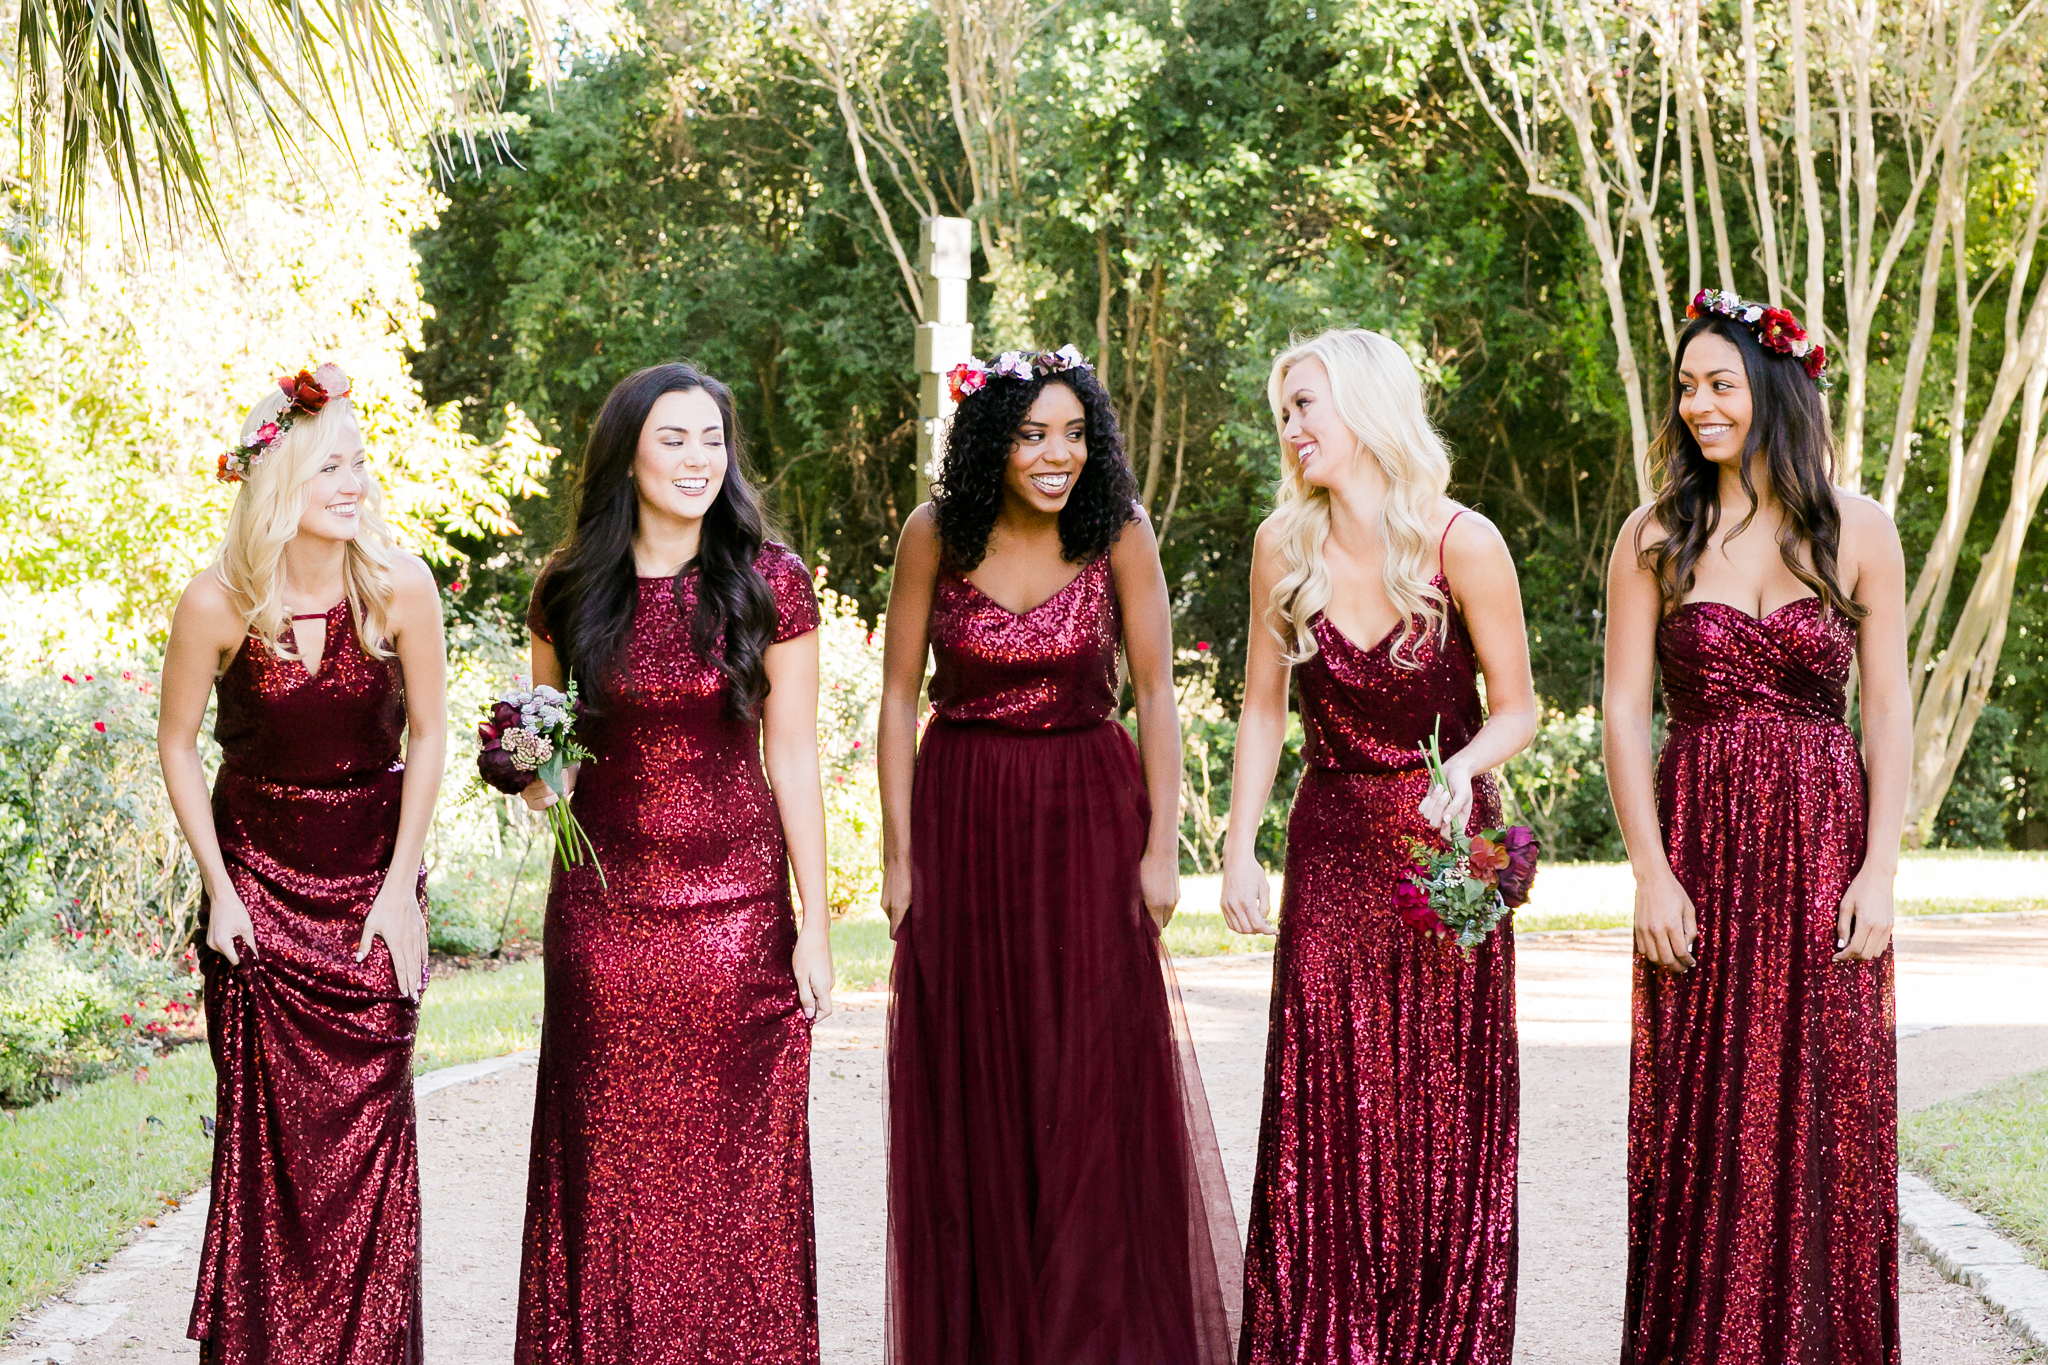 Cabernet sequin bridesmaid dresses are an unexpected fall wedding look that is sure to surprise.